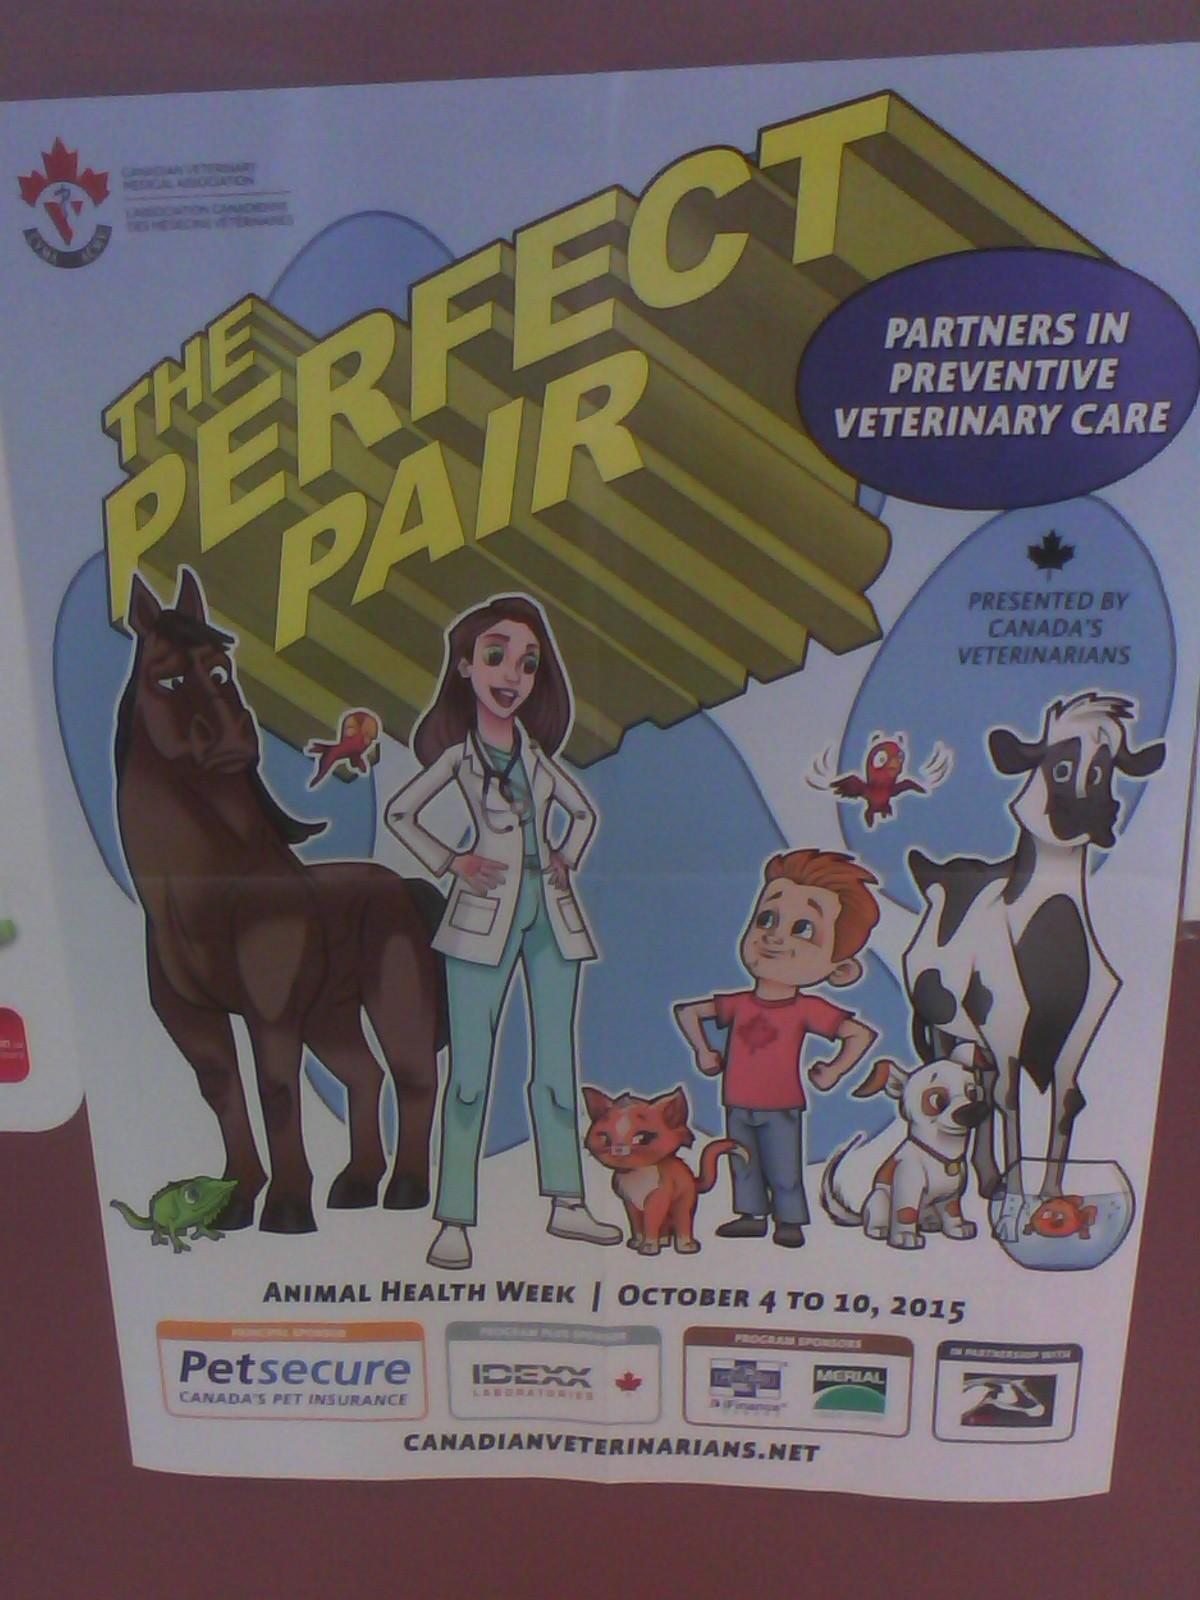 Comic poster about Animal Health Week